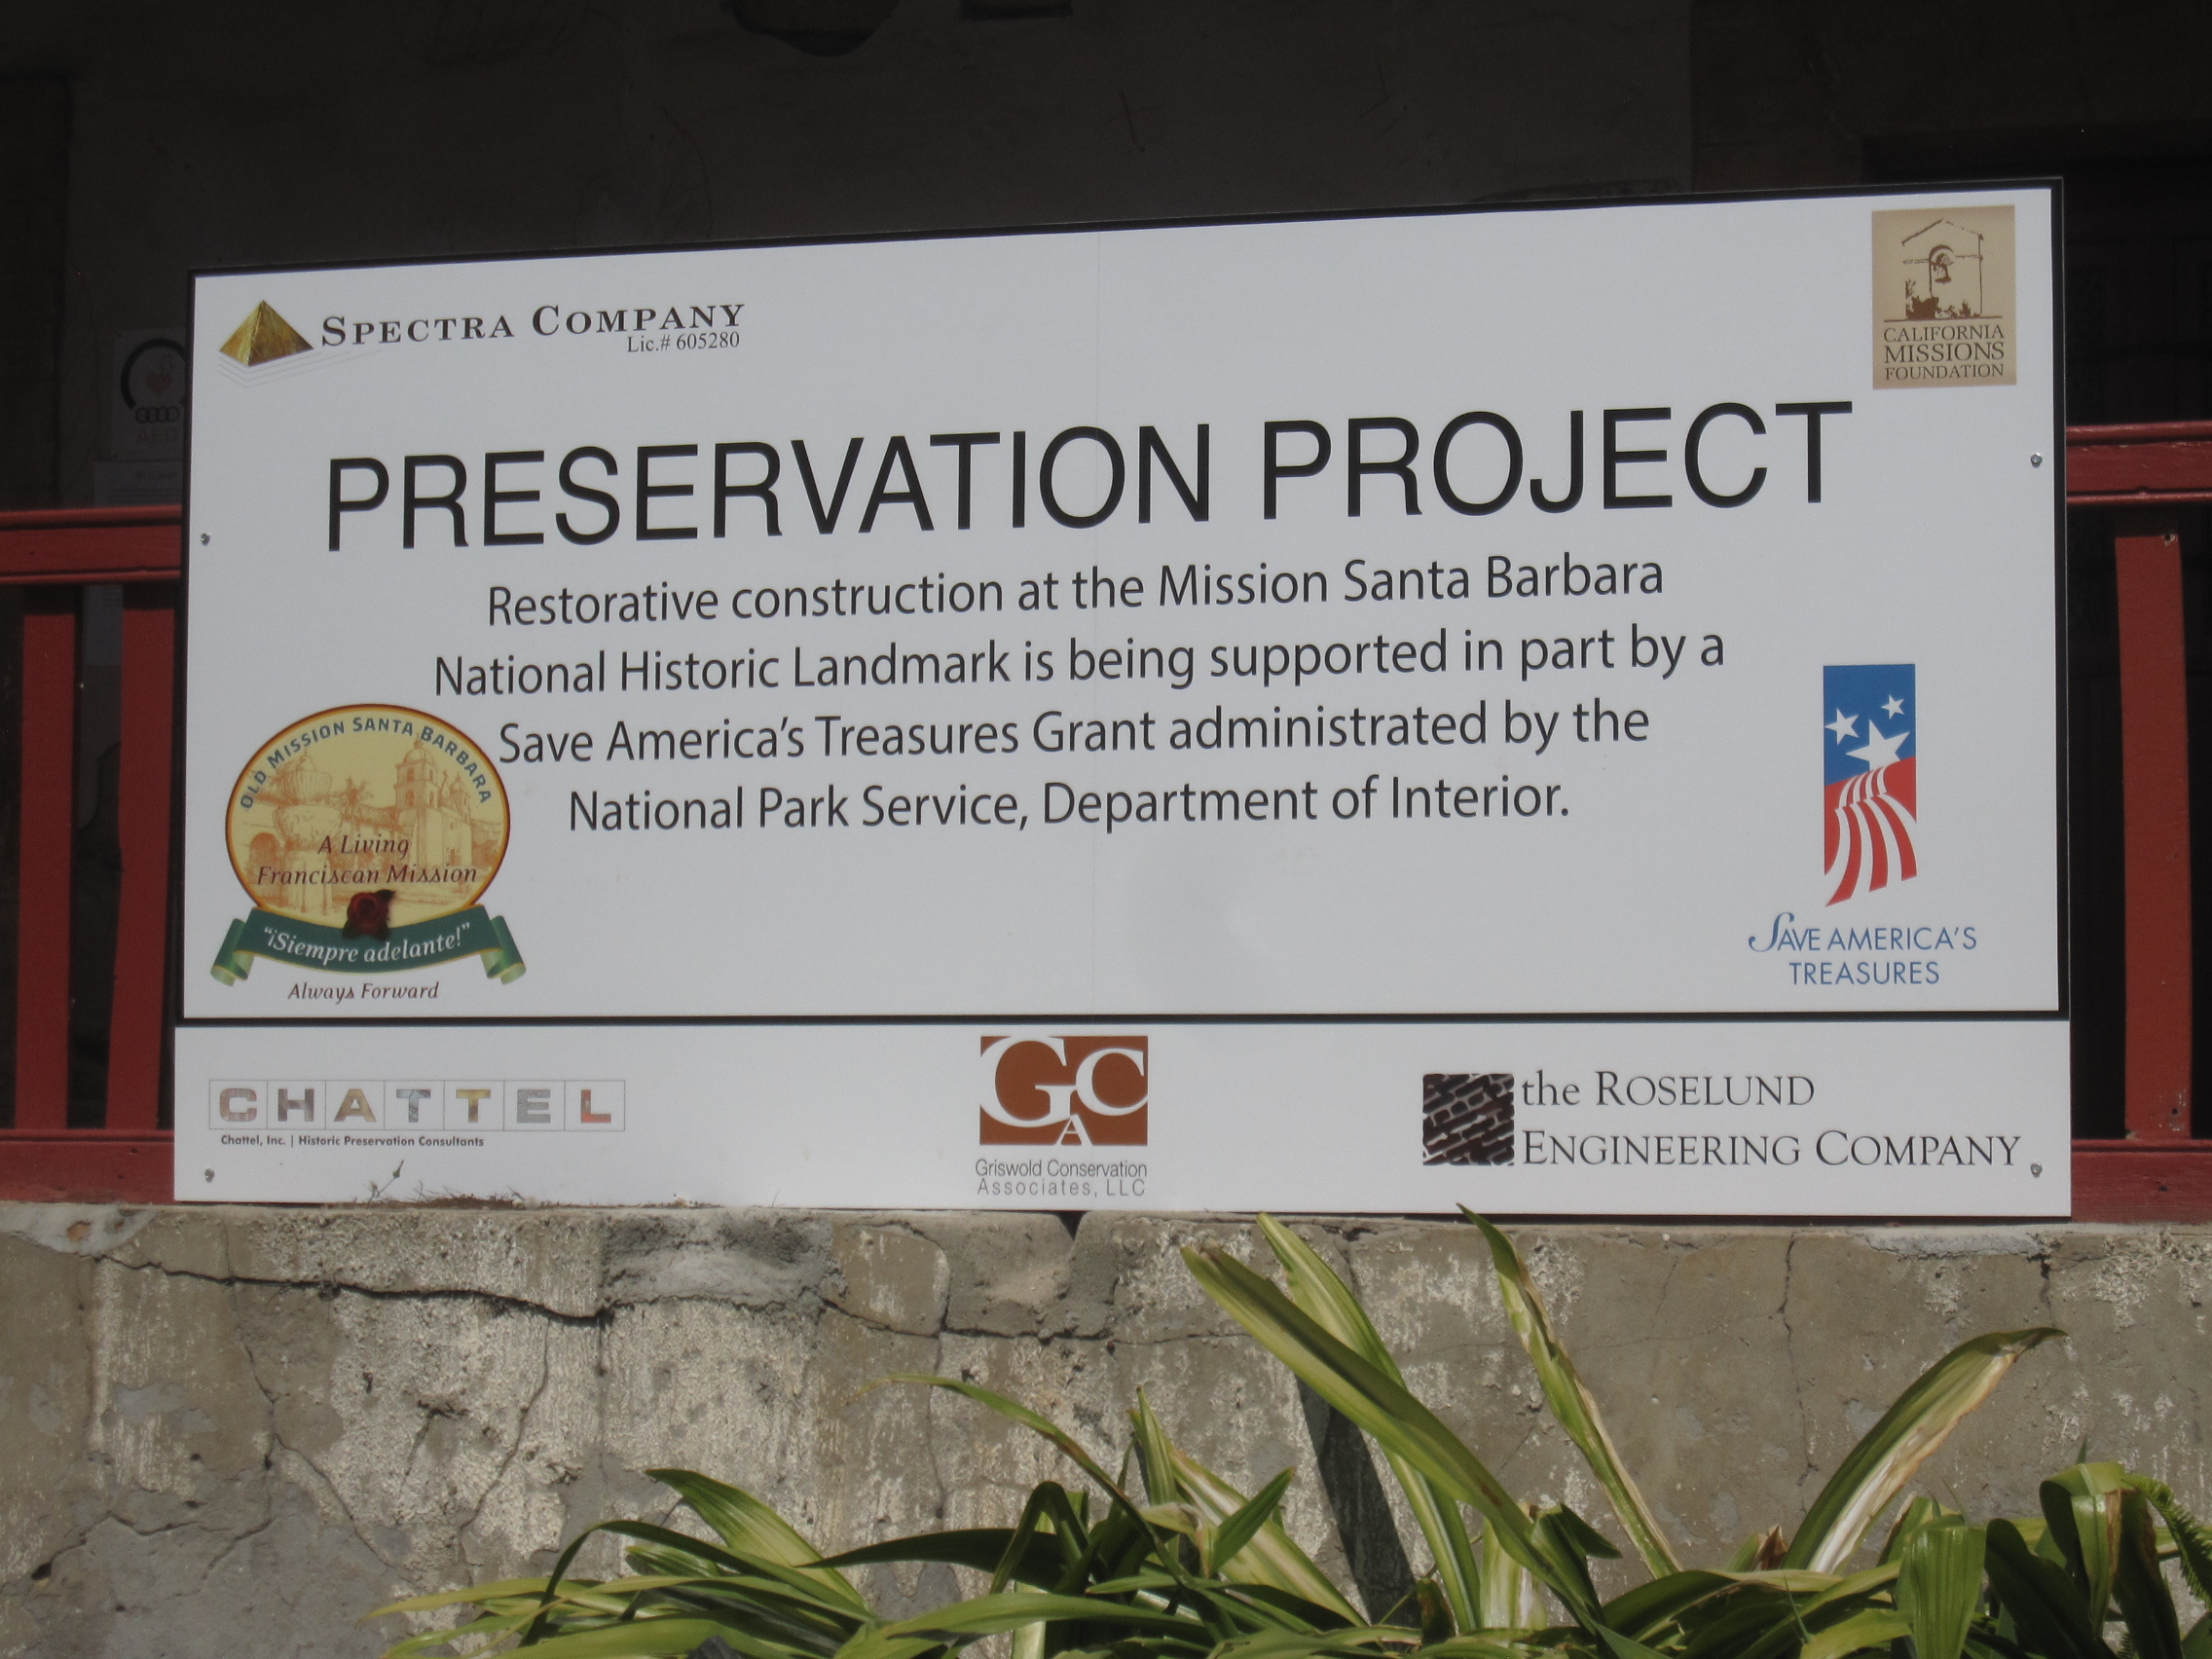 Project sign.